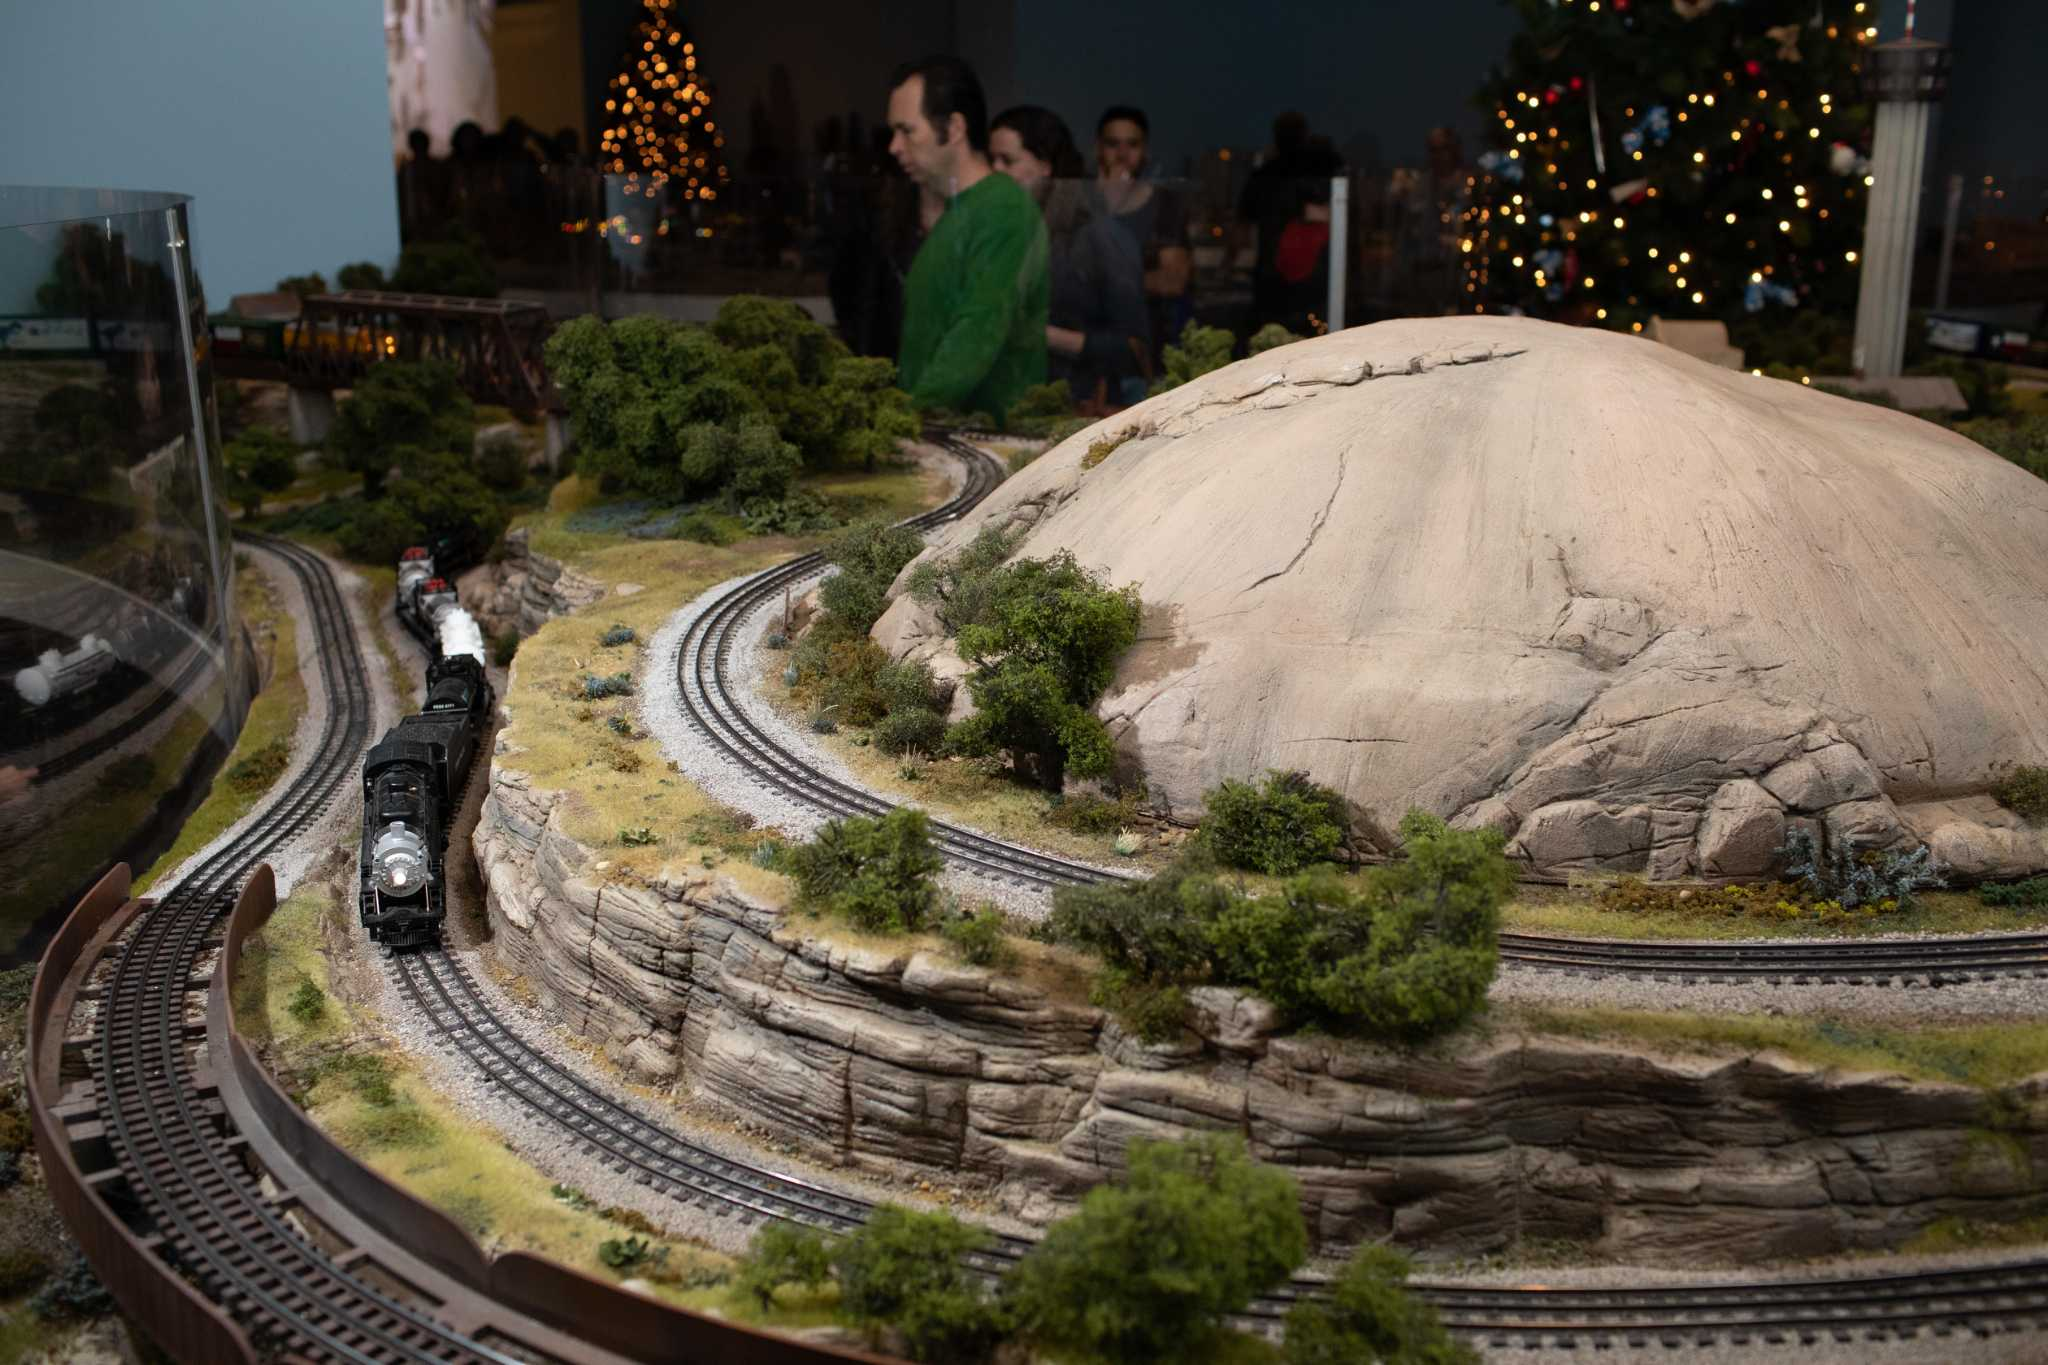 All aboard Christmas train displays in Houston